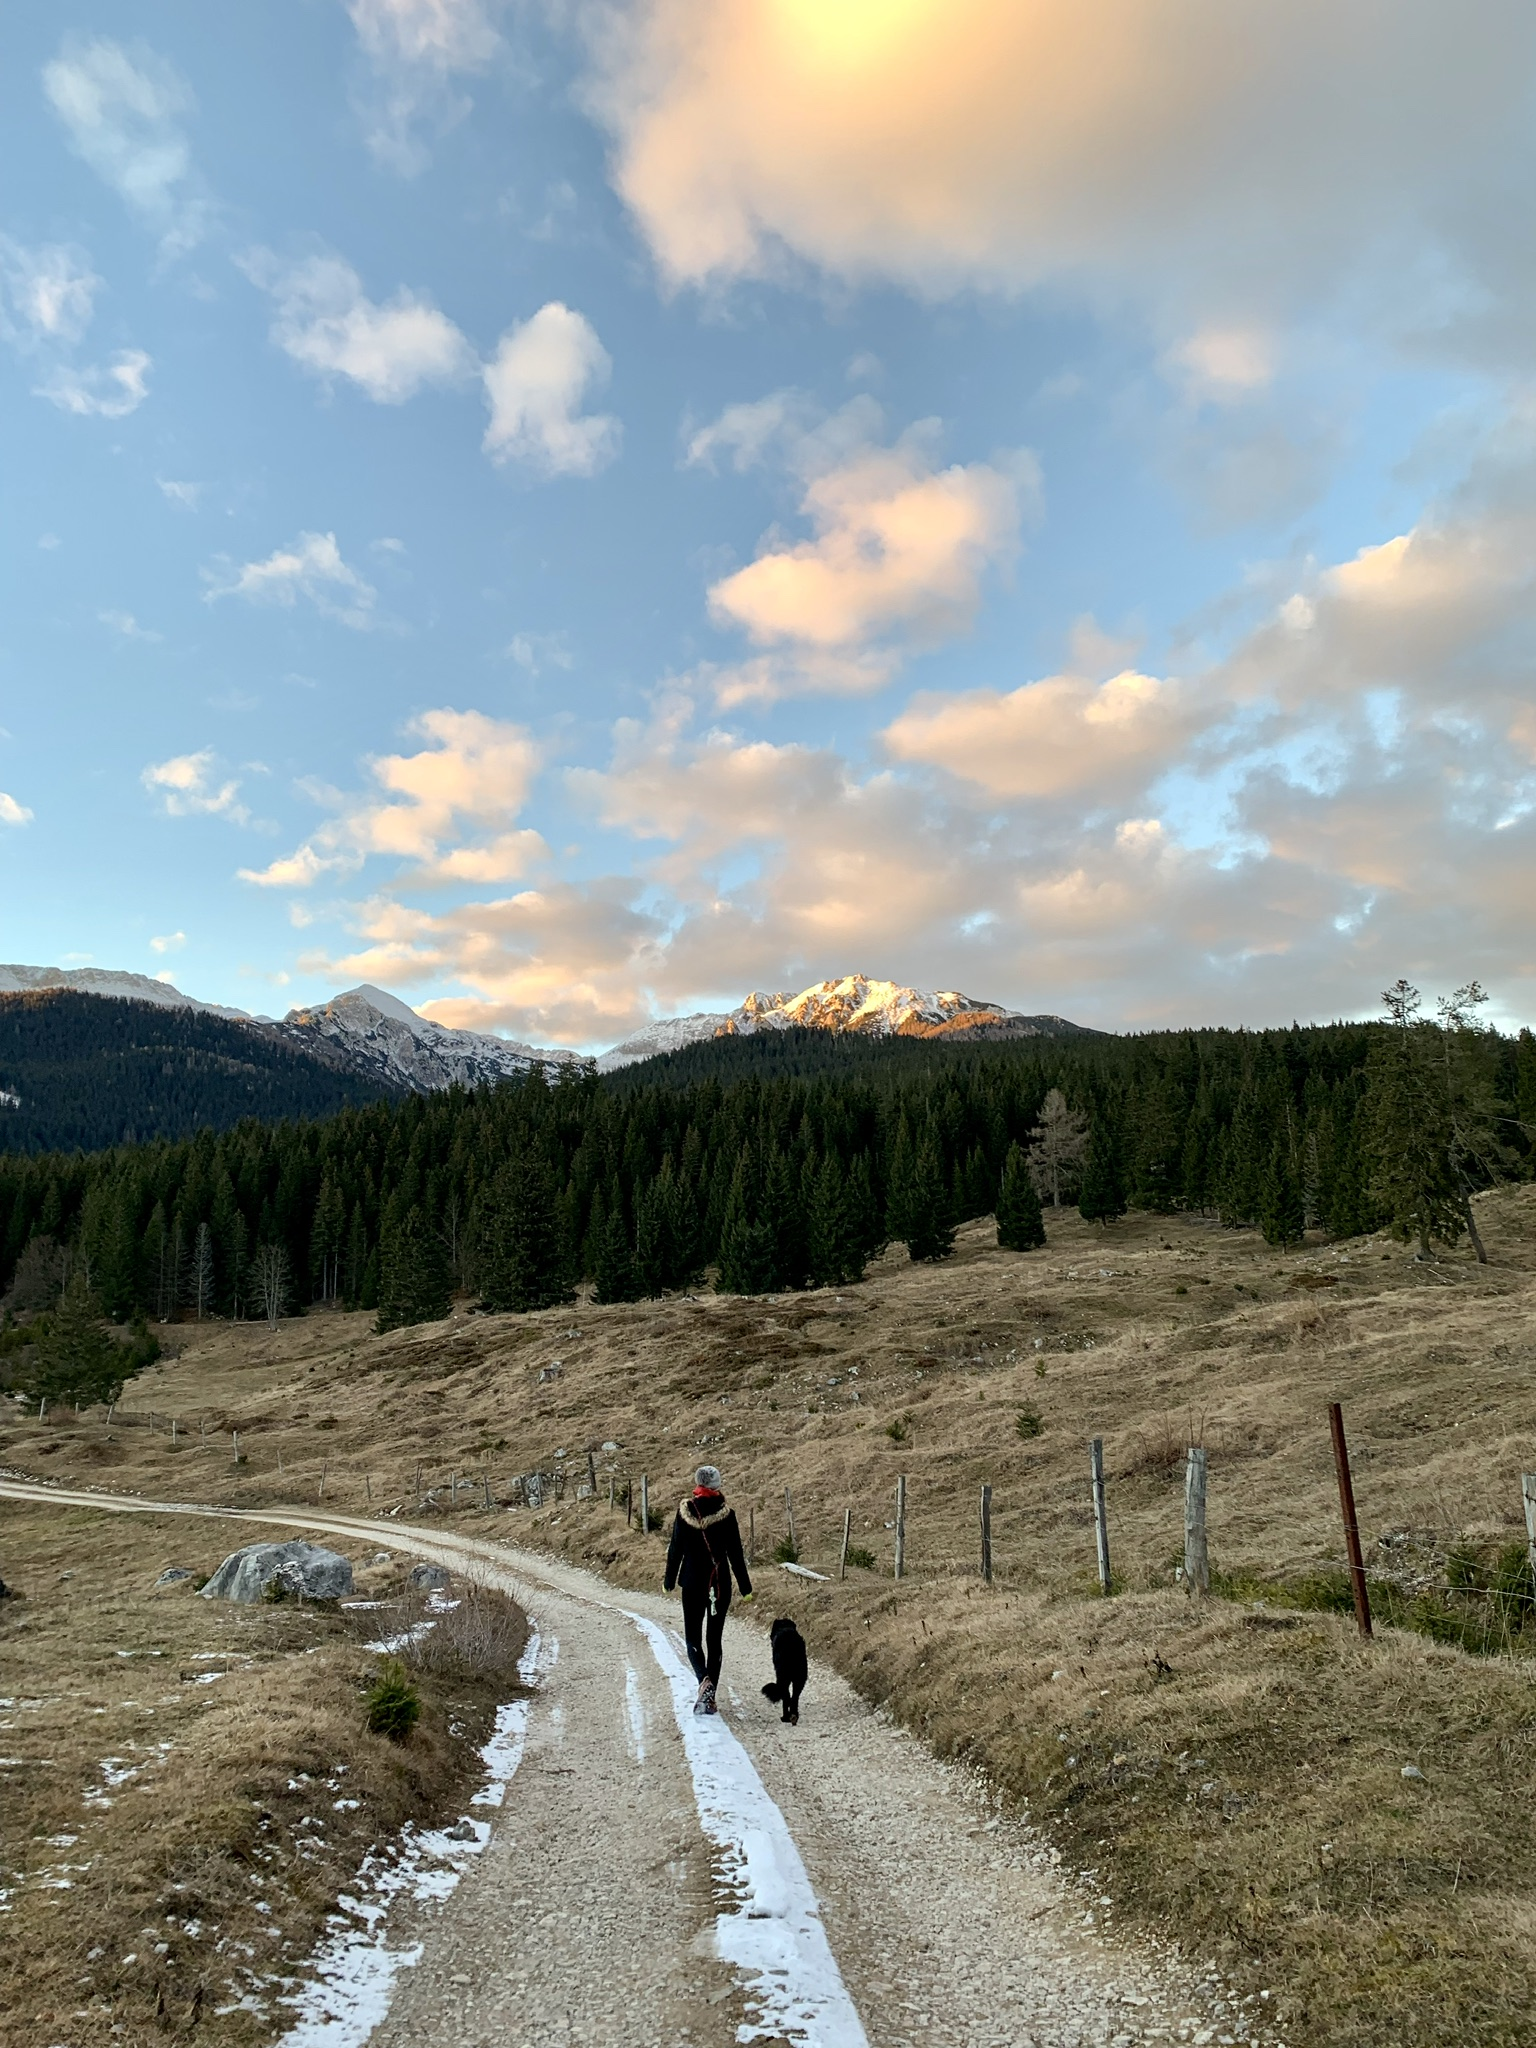 Hiking in Pokljuka for sunset, Triglav National Park, Slovenia